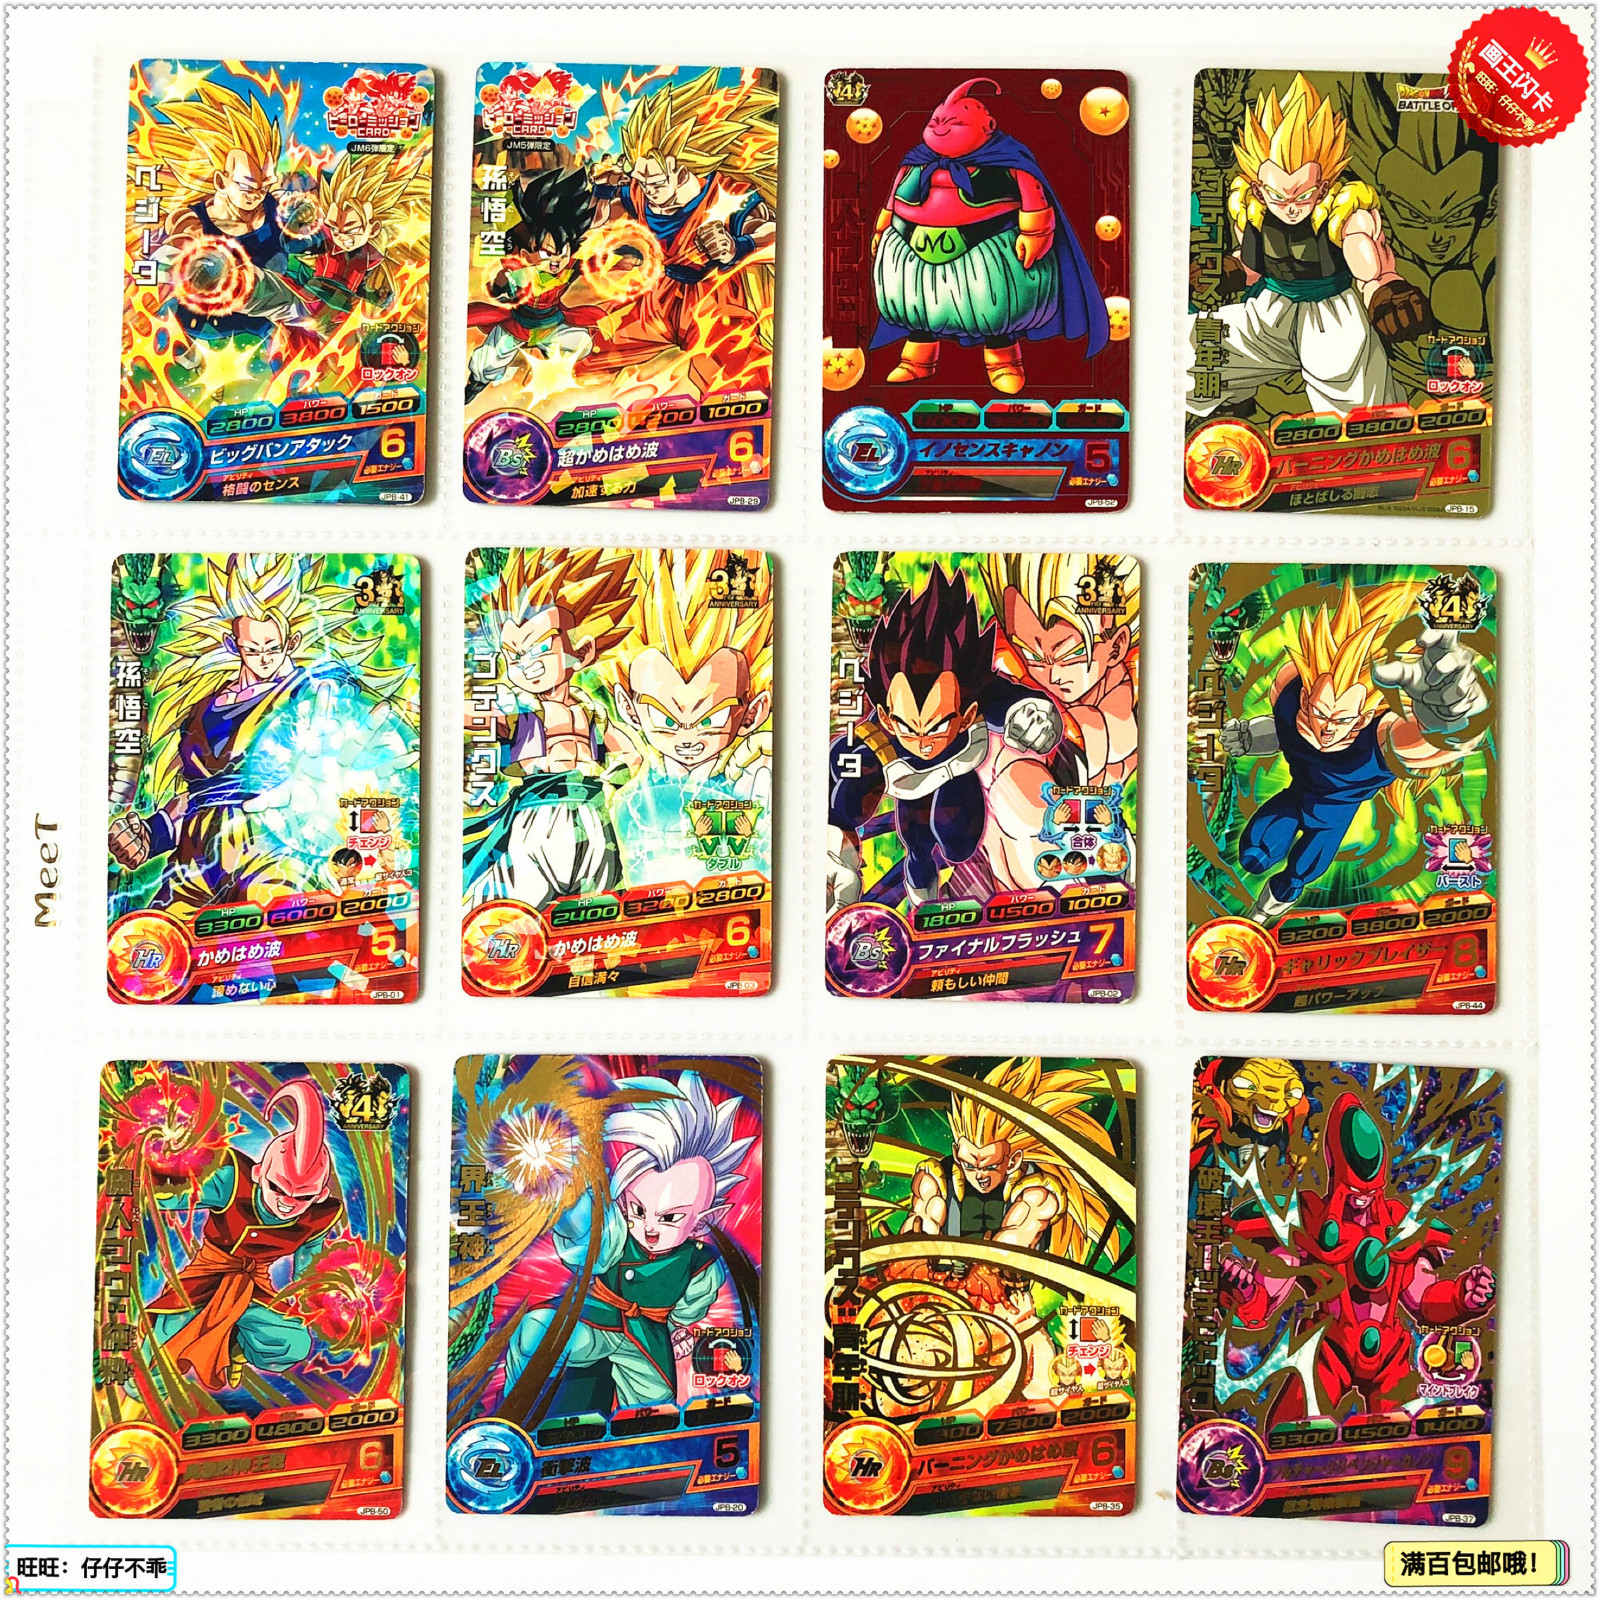 Japan Original Dragon Ball Hero Card JPB Goku Toys Hobbies Collectibles Game Collection Anime Cards